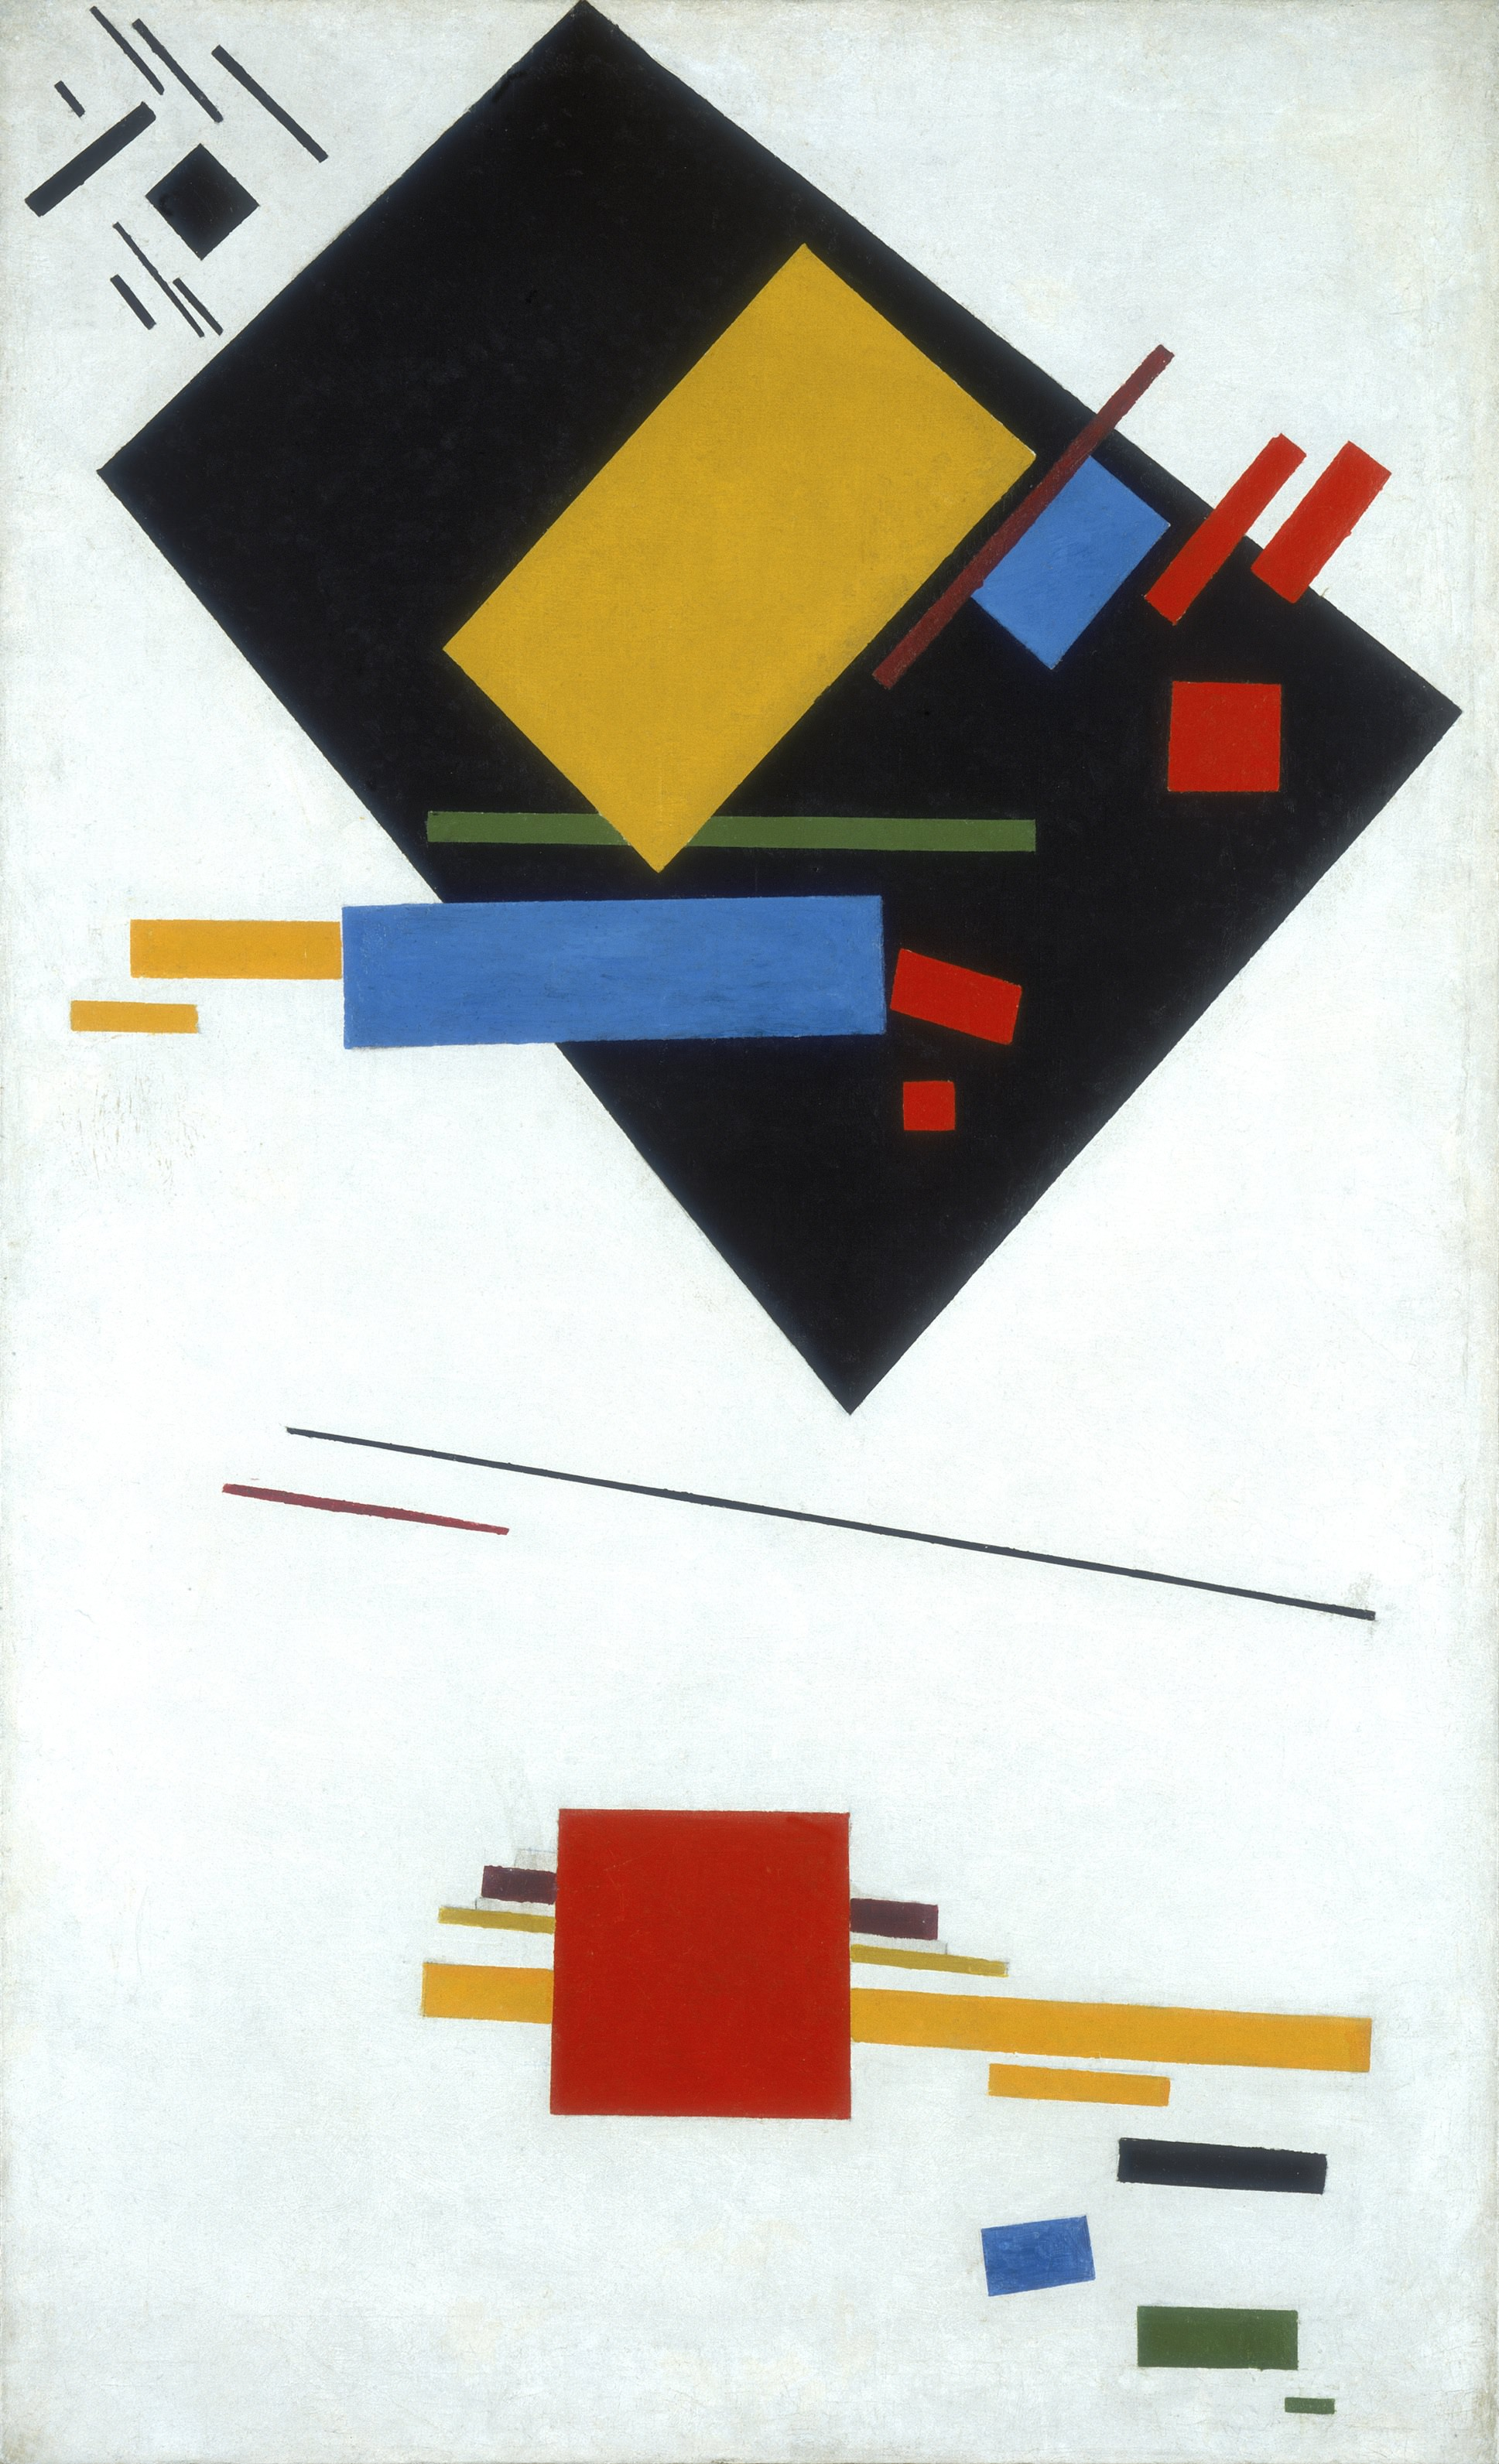 kazimir_malevich_suprematist_painting_with_black_trapezium_and_red_square_1915.jpg